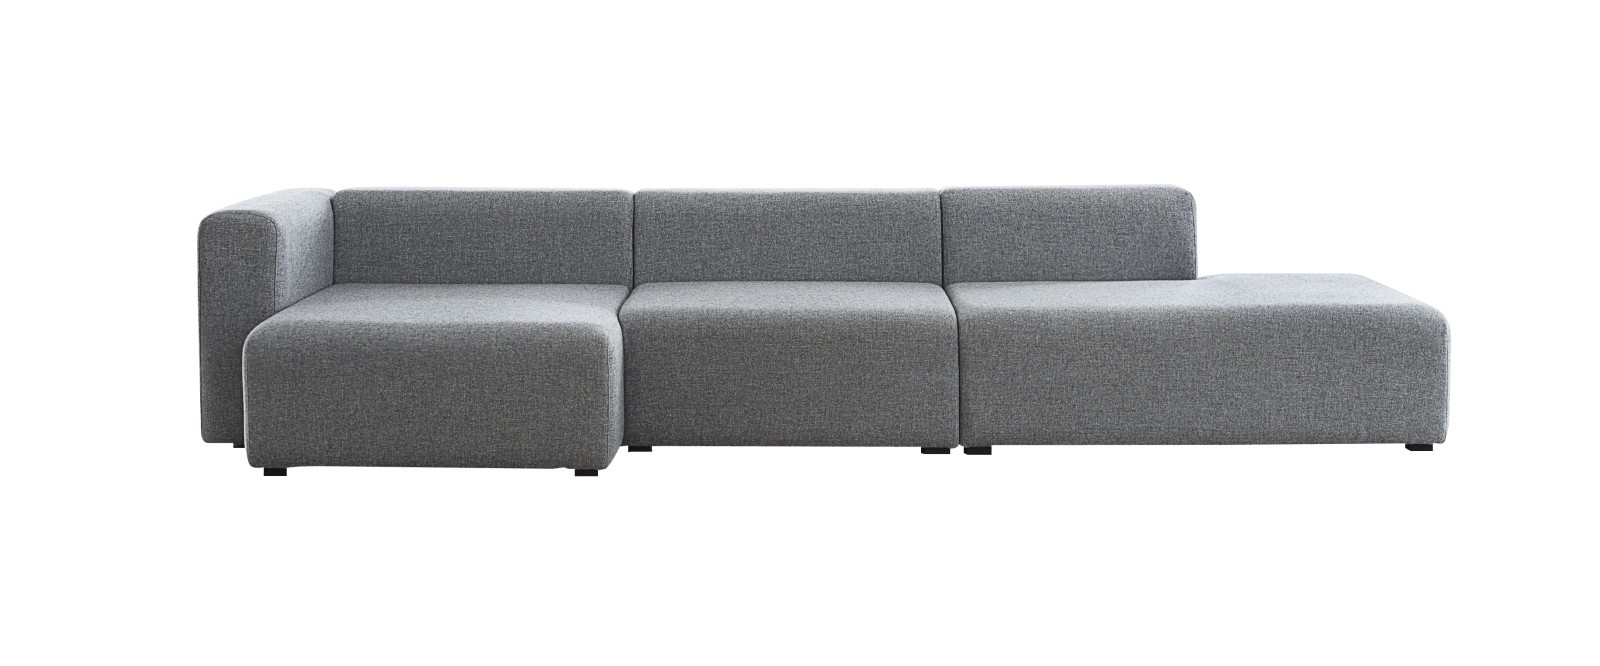 Mags Chaise Lounge Extra Wide Modular Element 8362 - Left Hallingdal 65 100